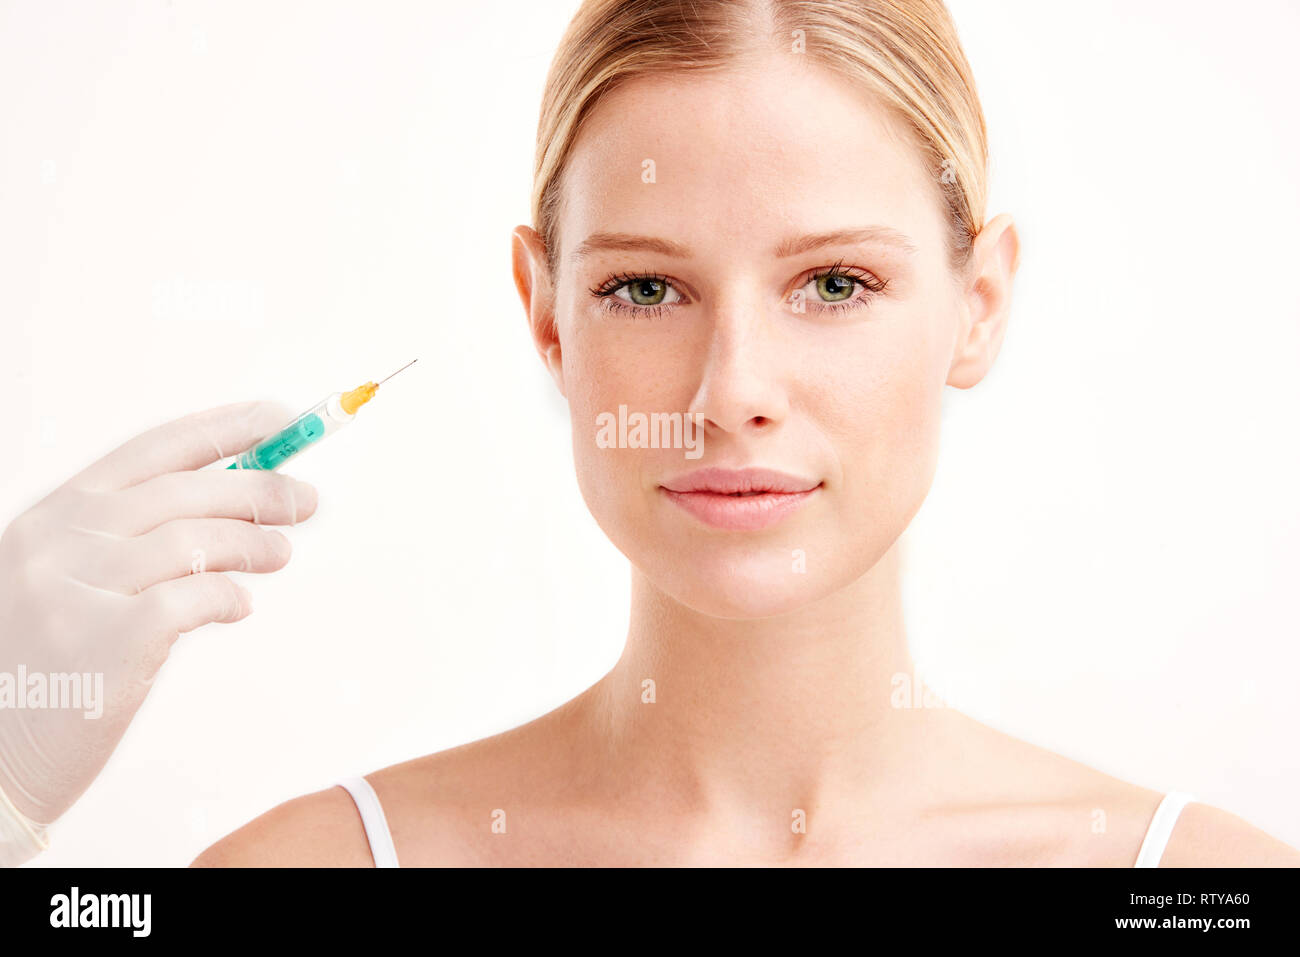 hight resolution of close up portrait shot of beautiful young woman having botox on her face isolated